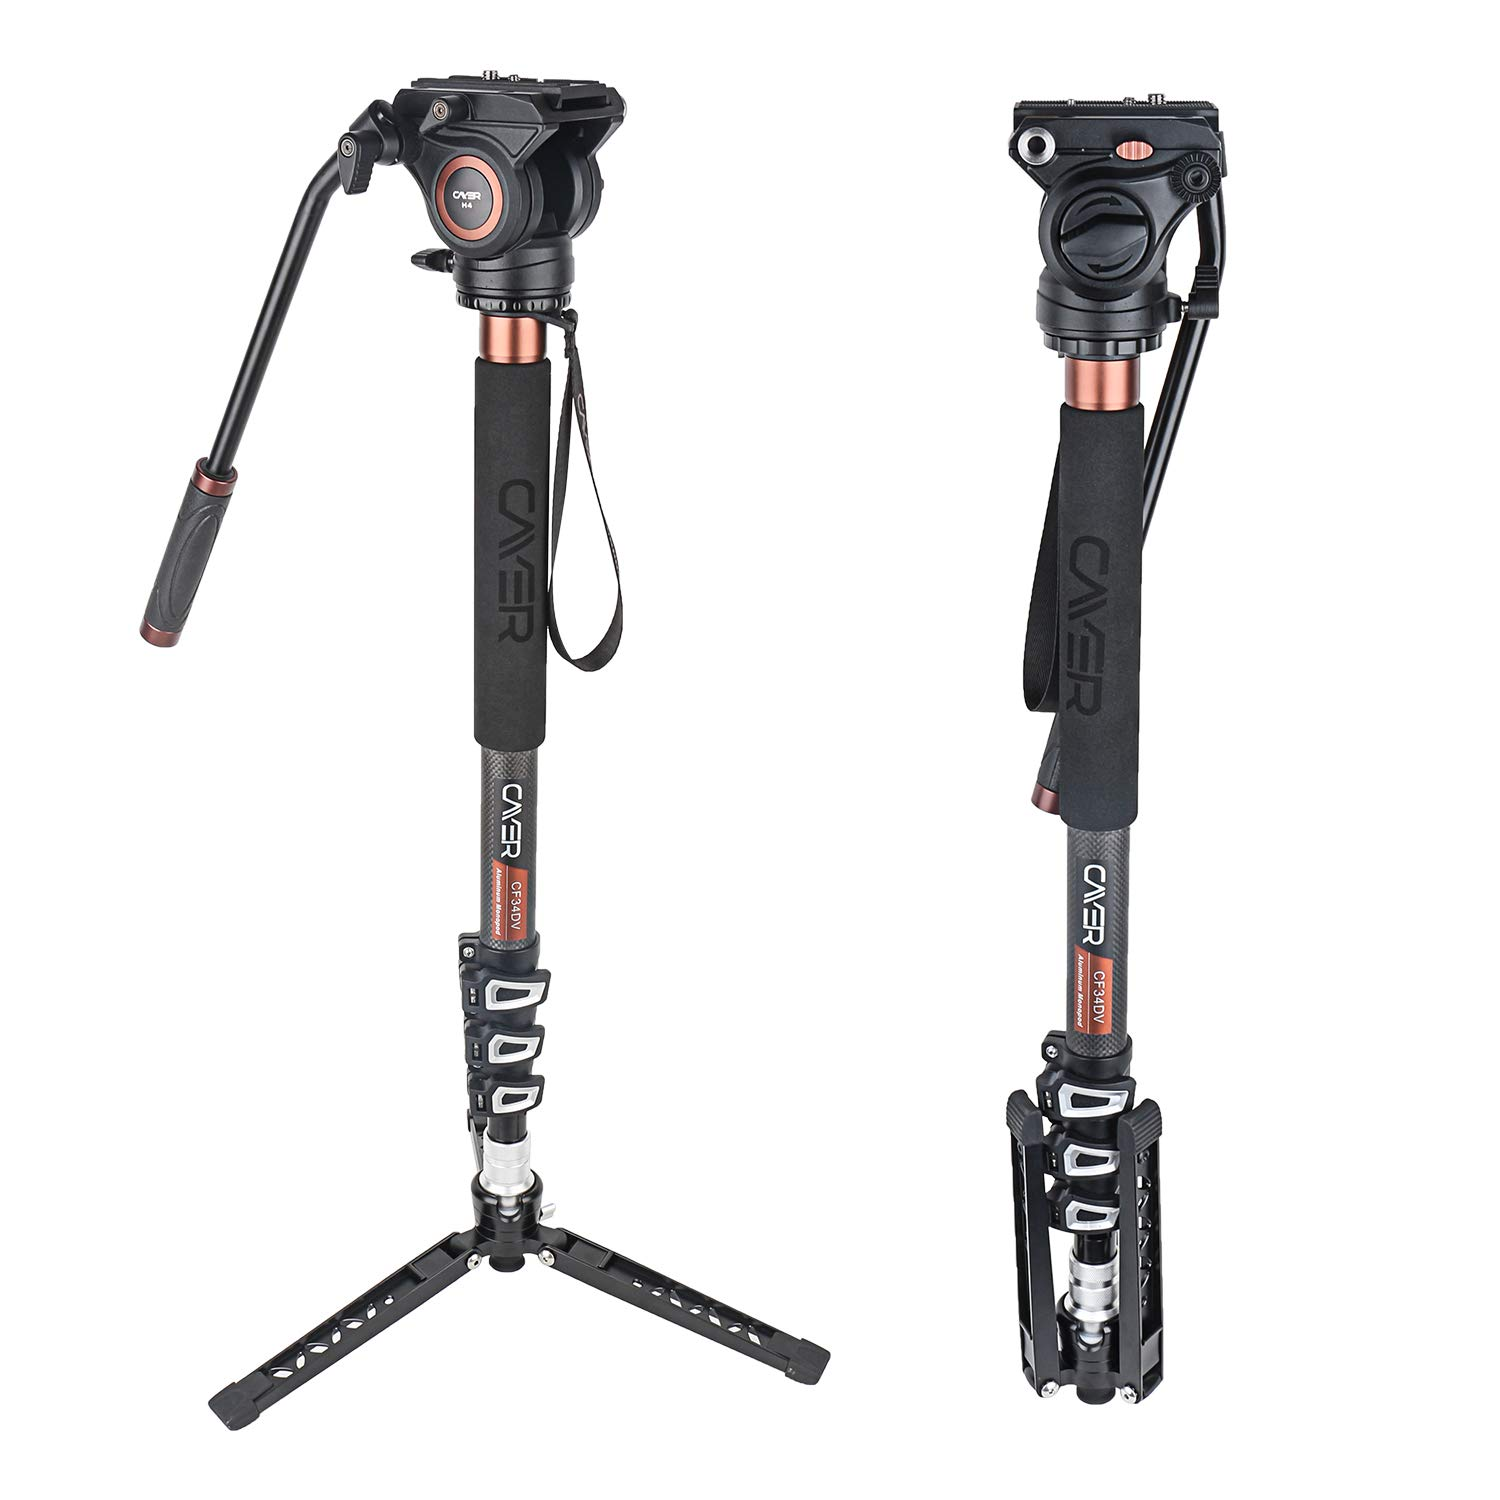 Cayer CF34 Video Monopod Kit, 71 inch Carbon Fiber Camera Monopod with Pan Tilt Fluid Head and Tripod Feet for DSLR Video Cameras Camcorders, Plus 1 Extra Sliding Plate by Cayer